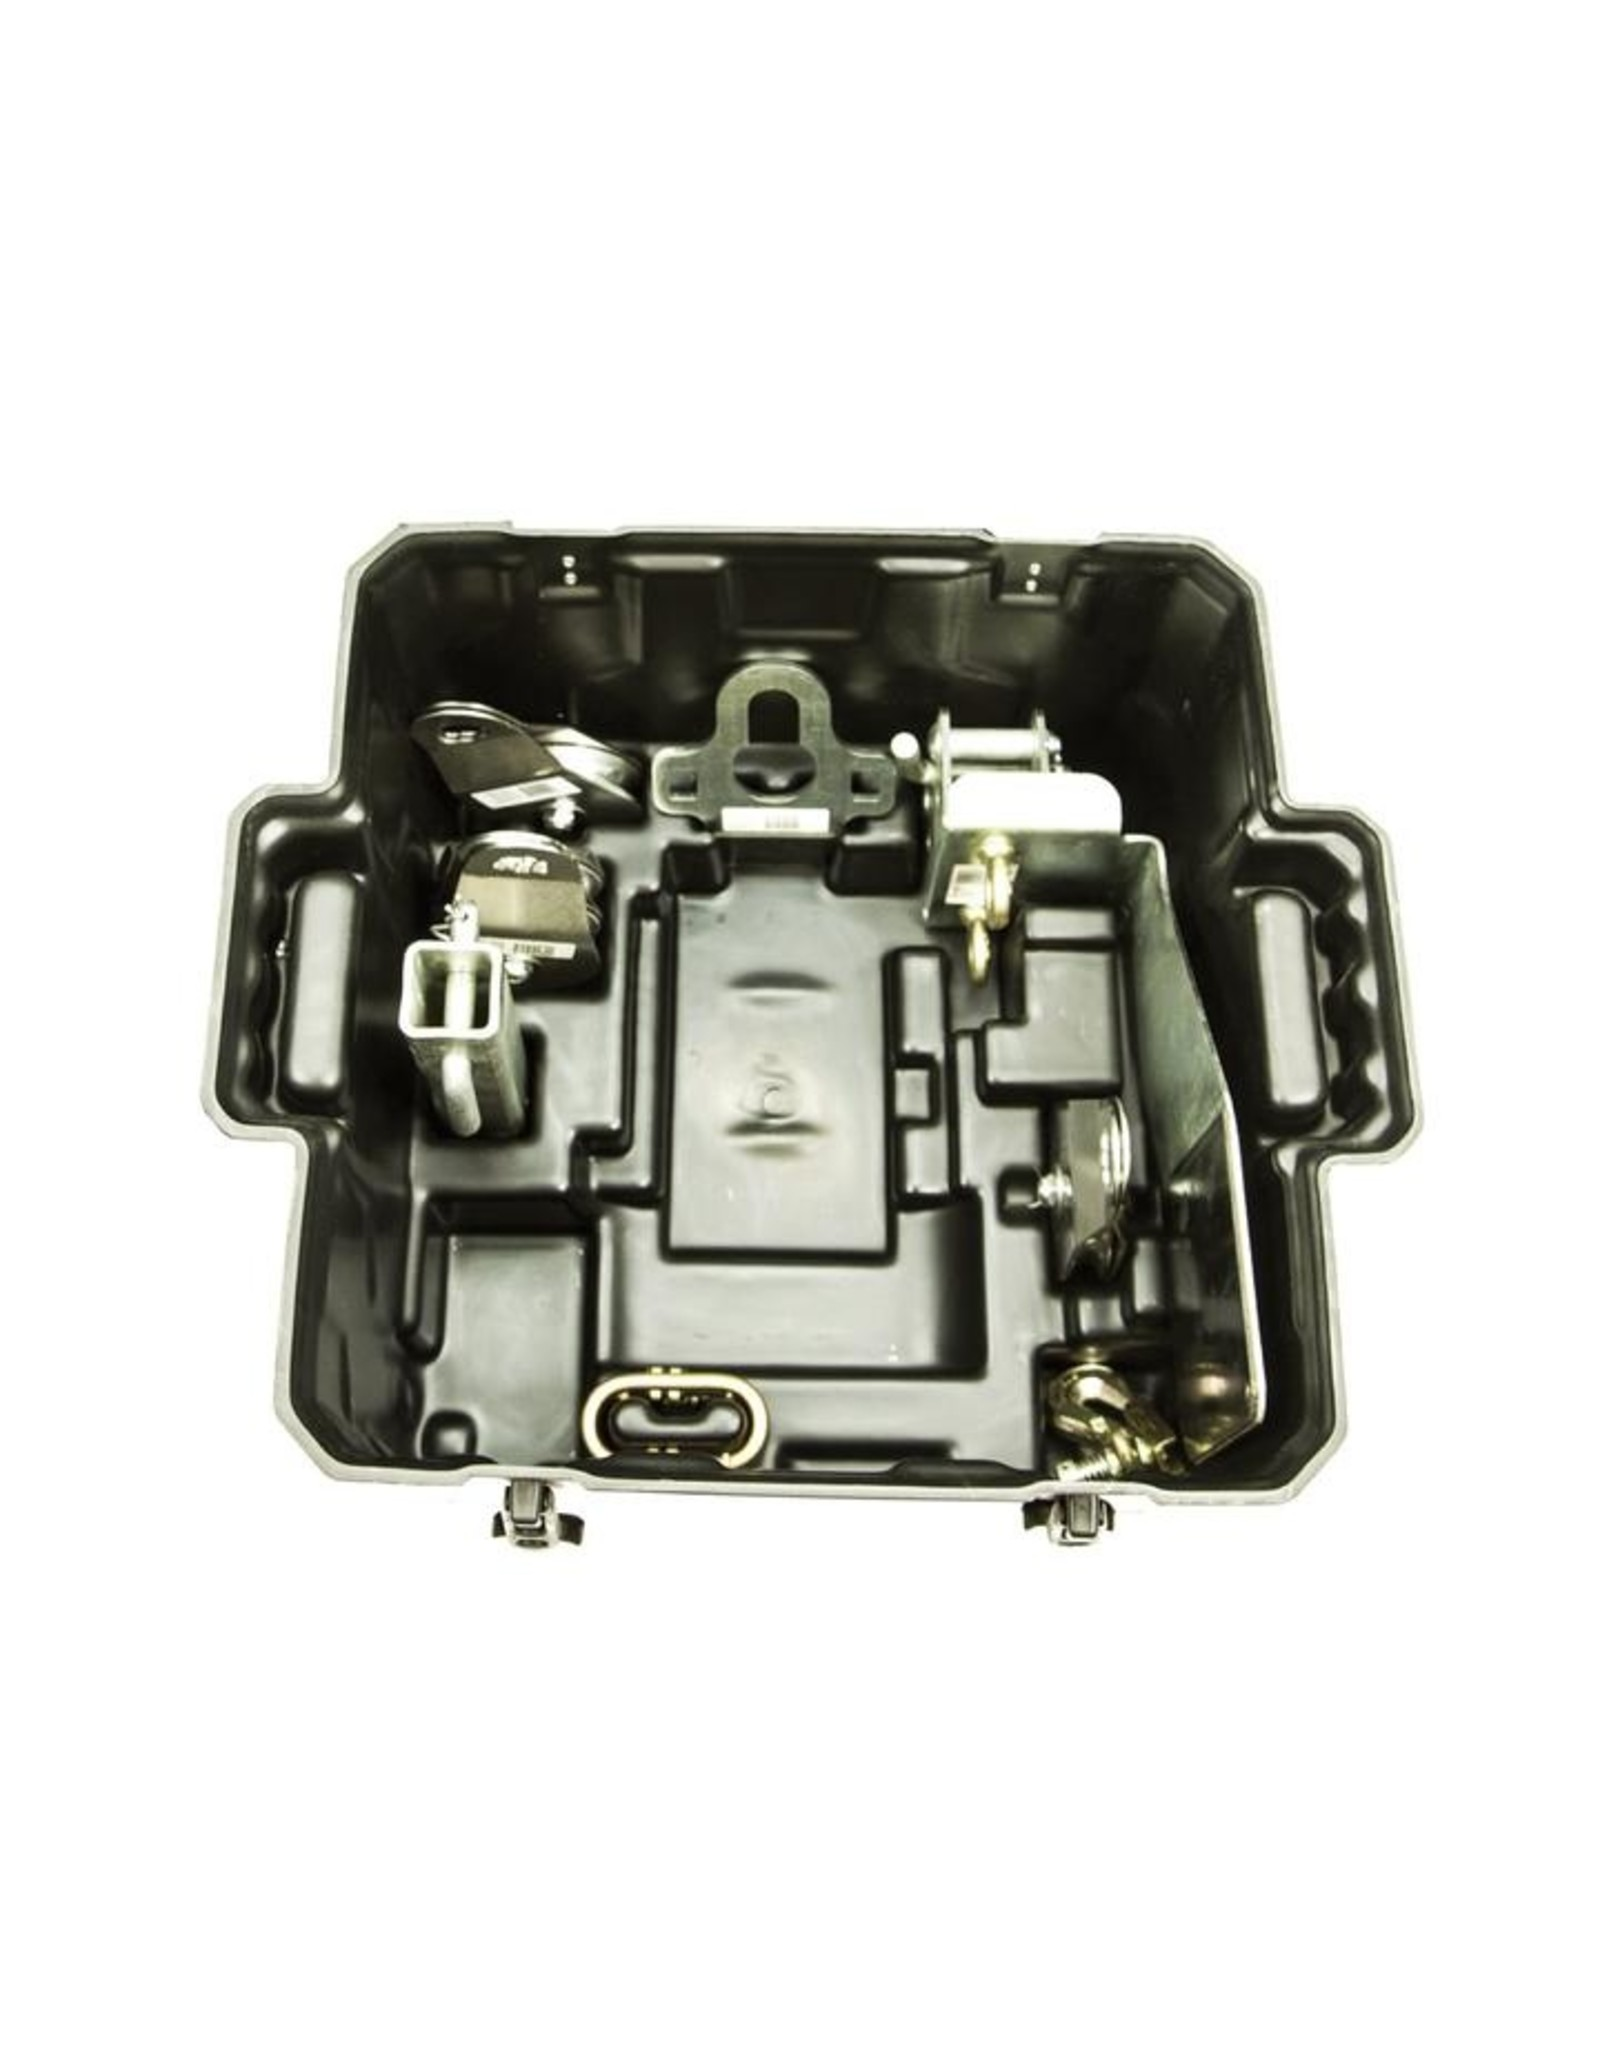 Portable Winch PW MOLDED TRANSPORT CASE FOR PCW5000 AND PCW5000-HS